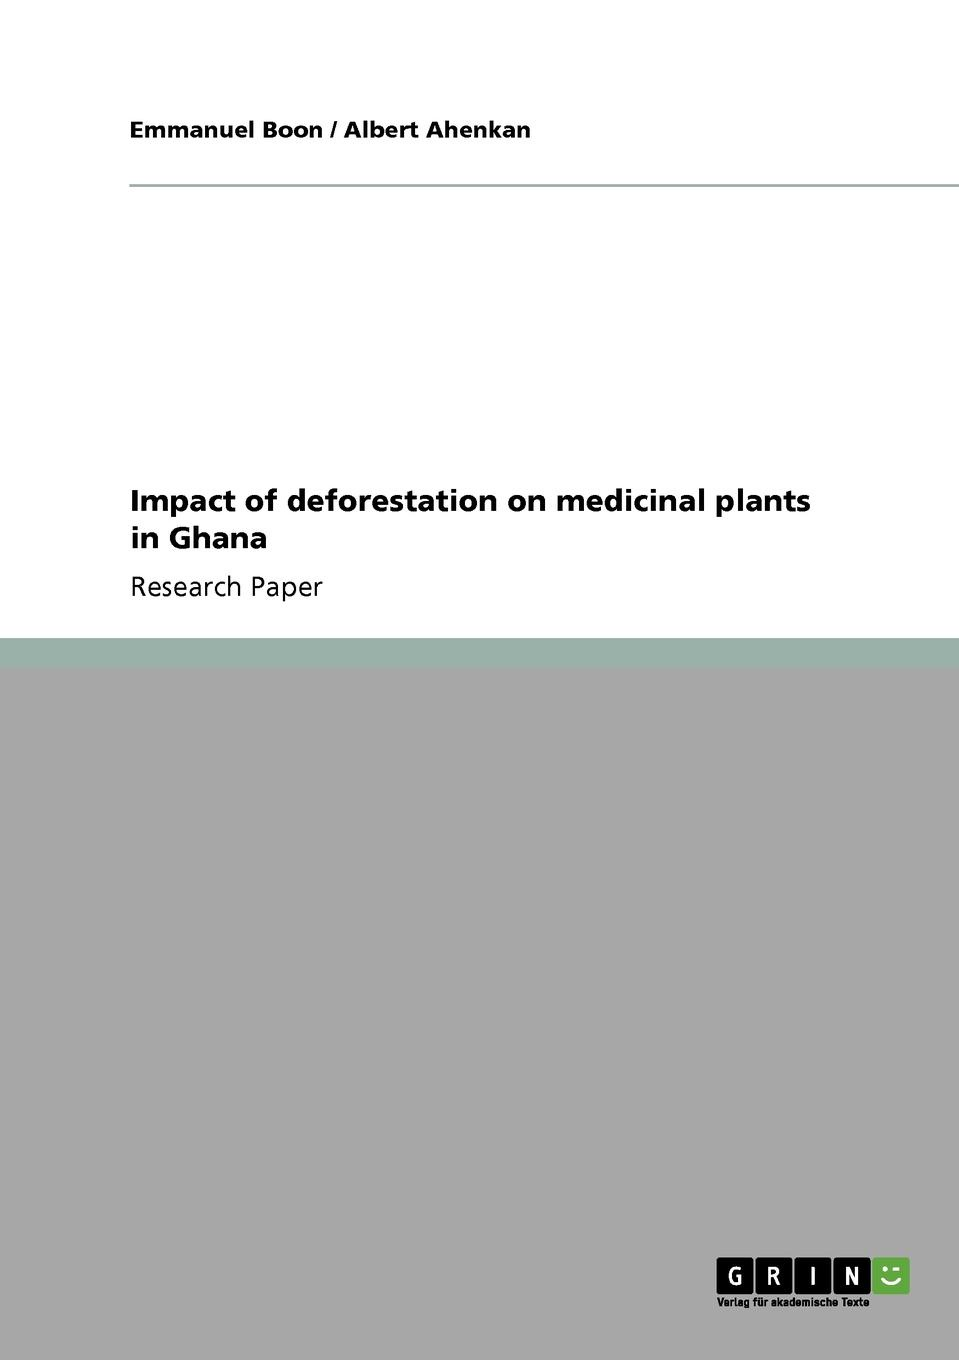 Emmanuel Boon, Albert Ahenkan Impact of deforestation on medicinal plants in Ghana